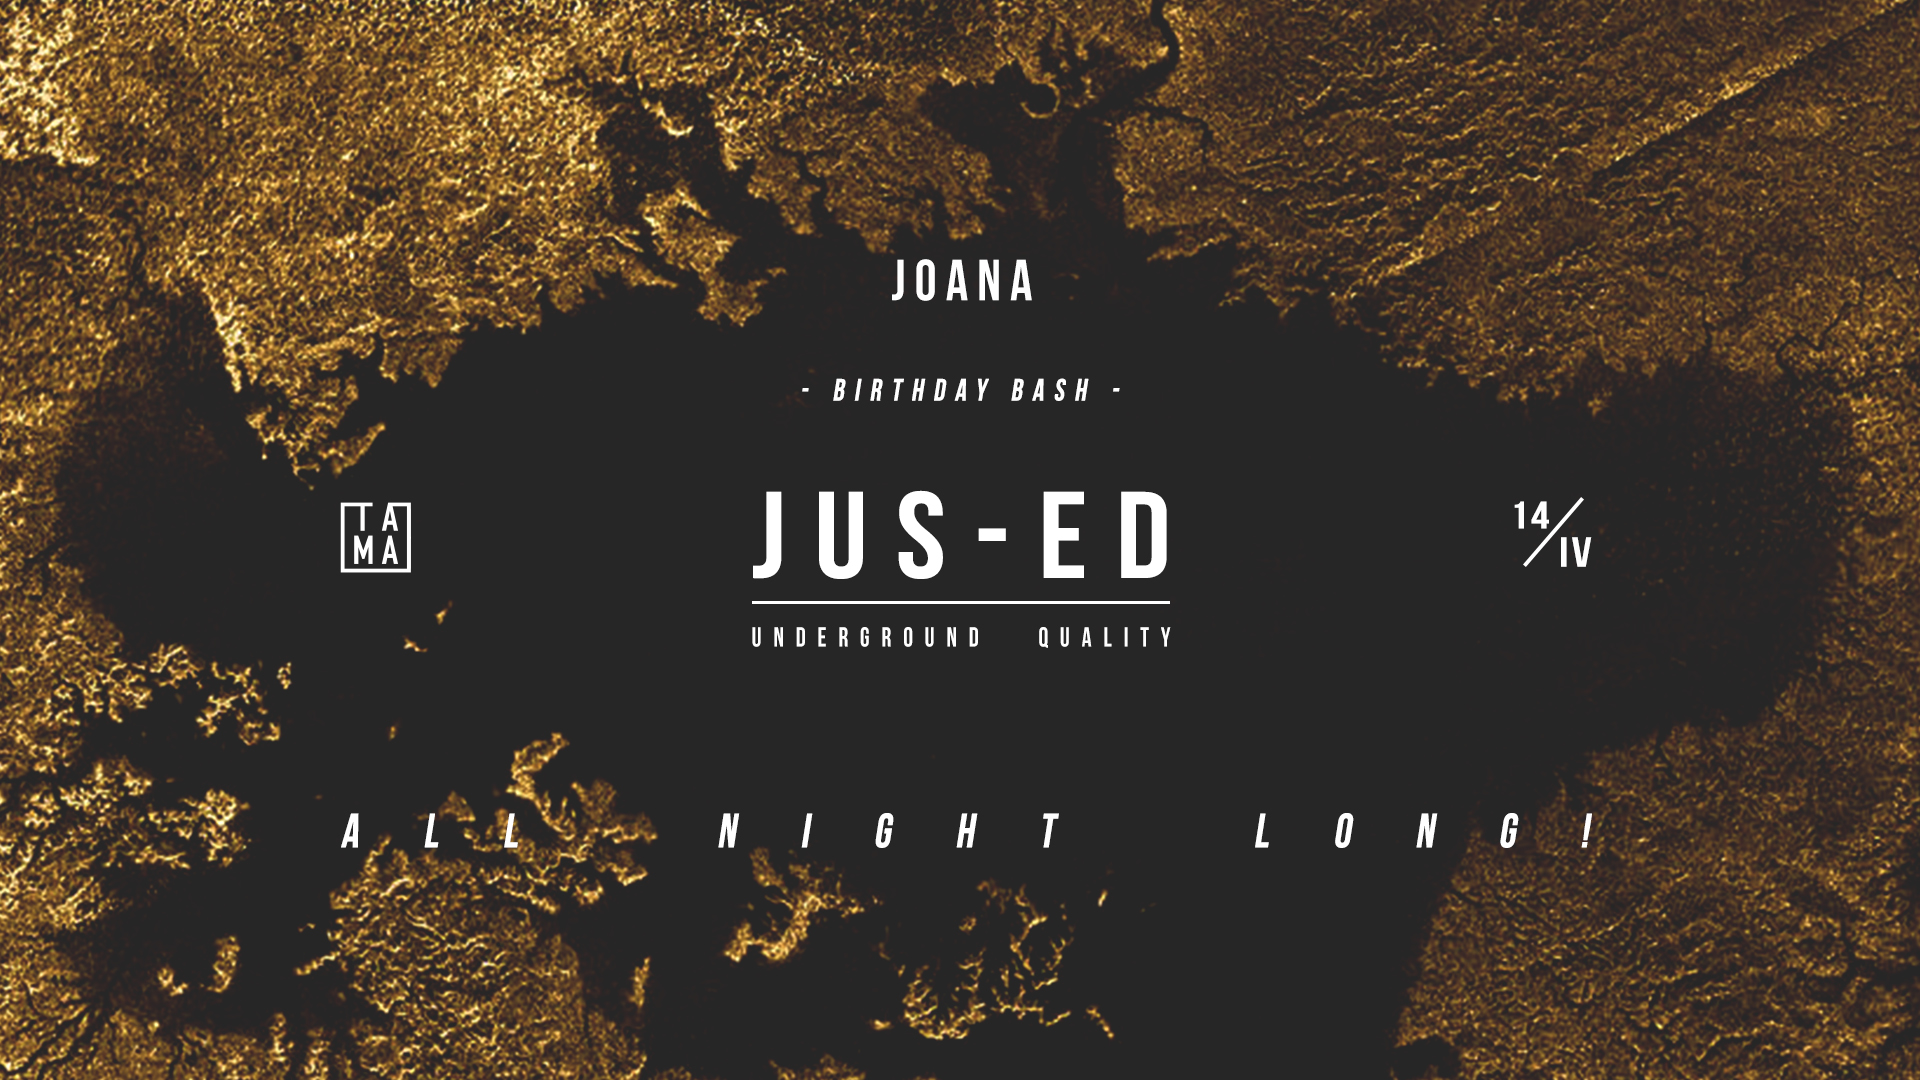 Joana Birthday Bash: Jus-Ed all night long!